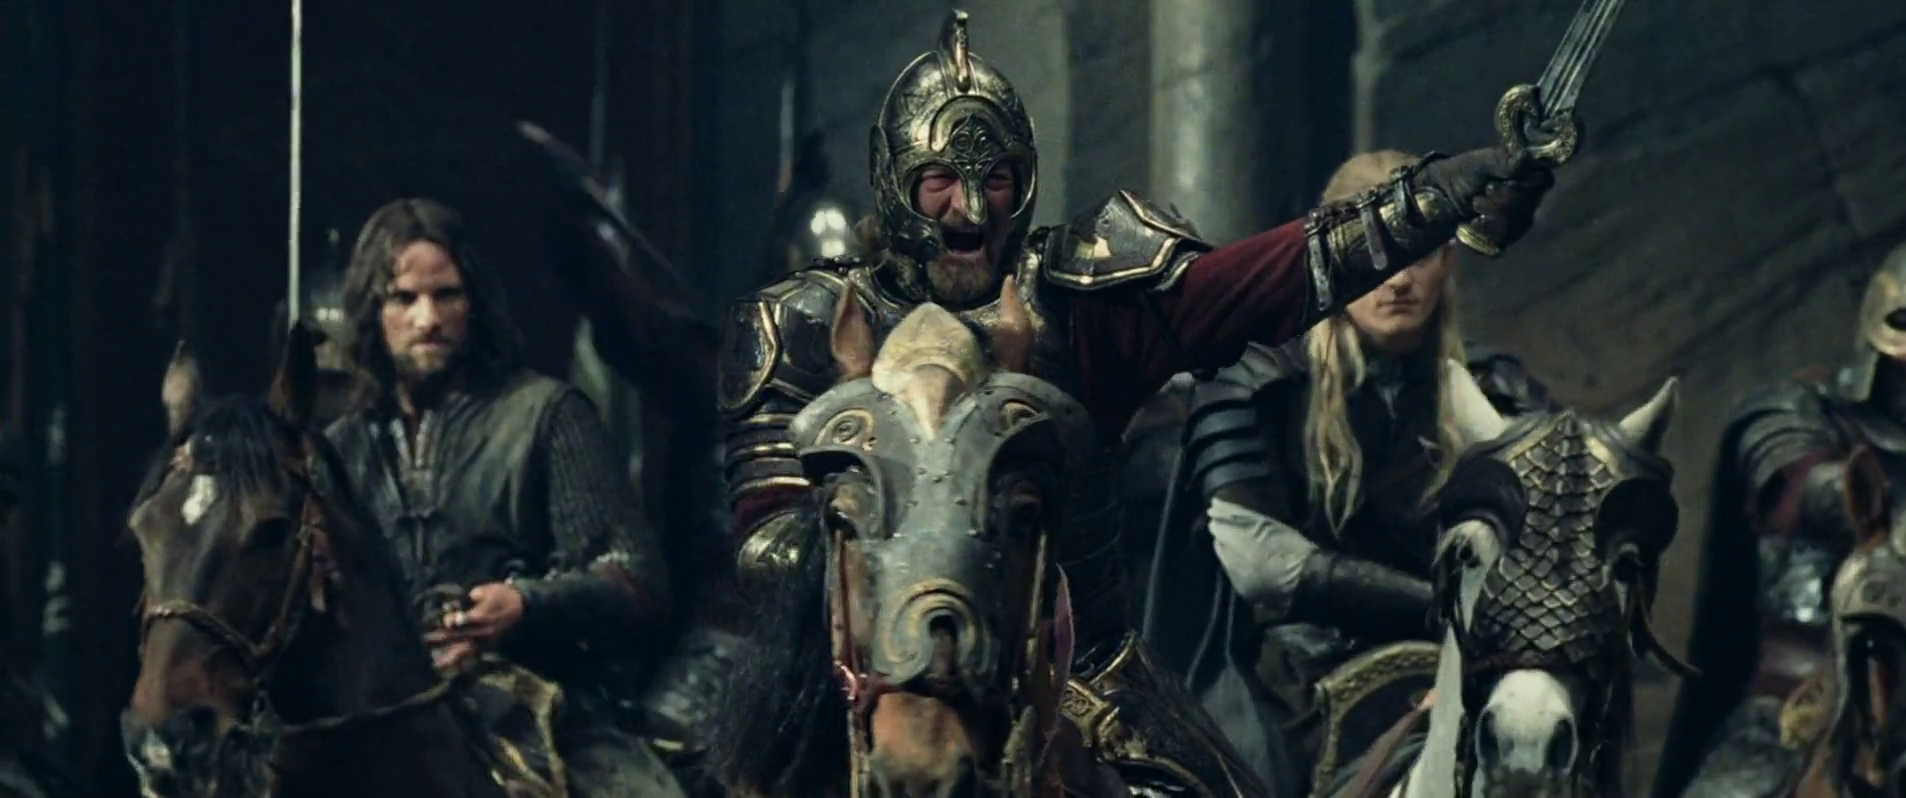 Lord Of The Rings Theoden Charge